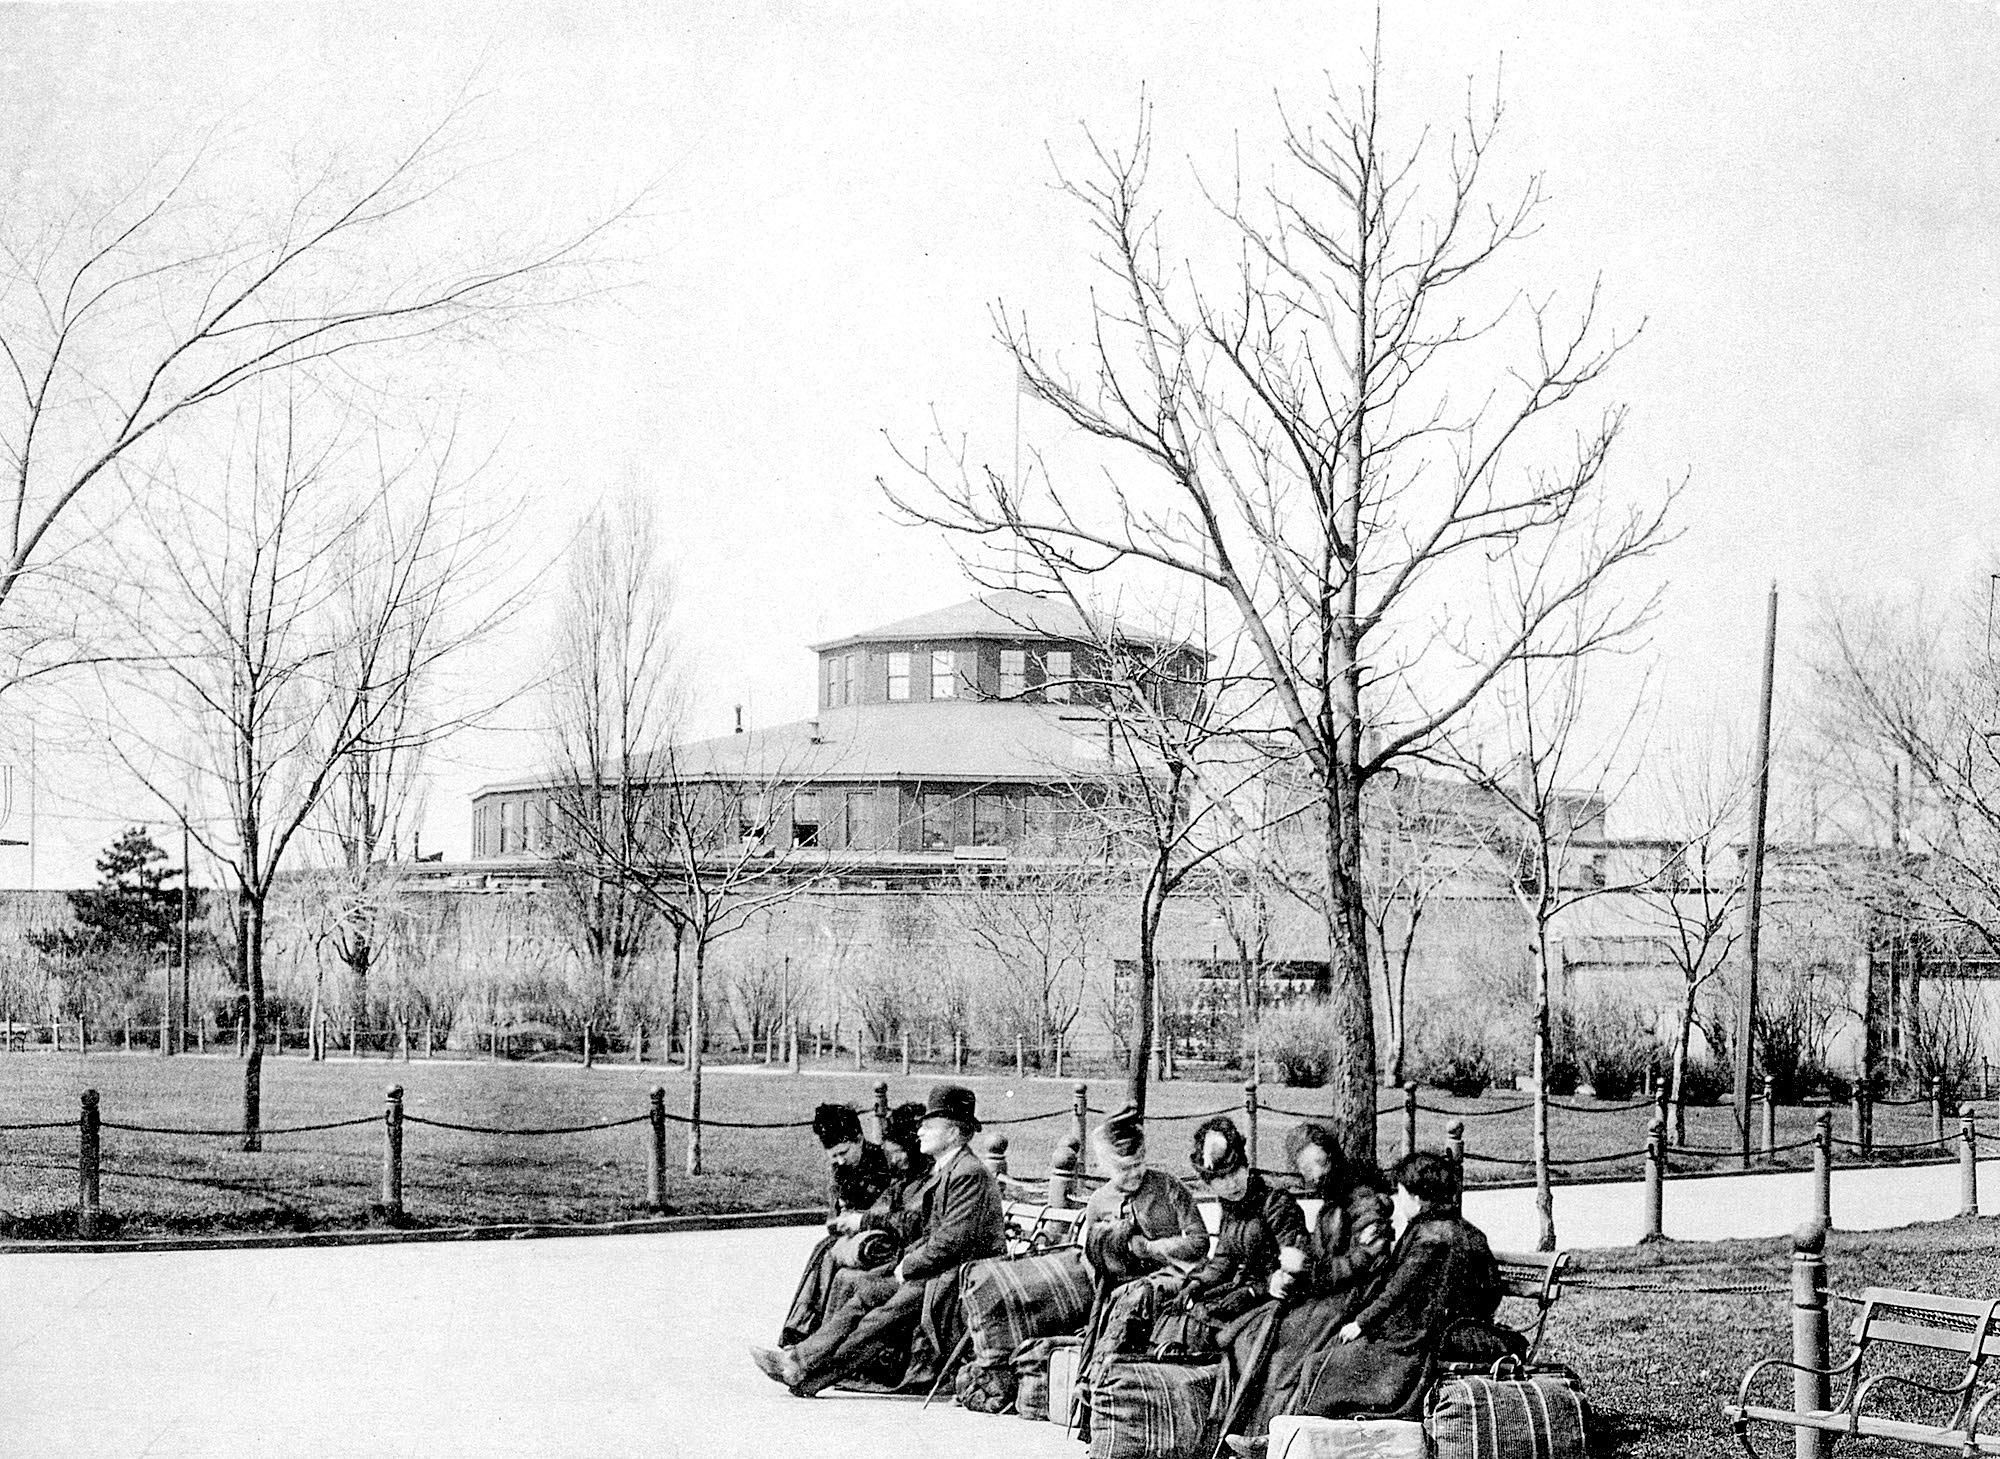 Castle garden was america 39 s first immigration center for Castle garden immigration records